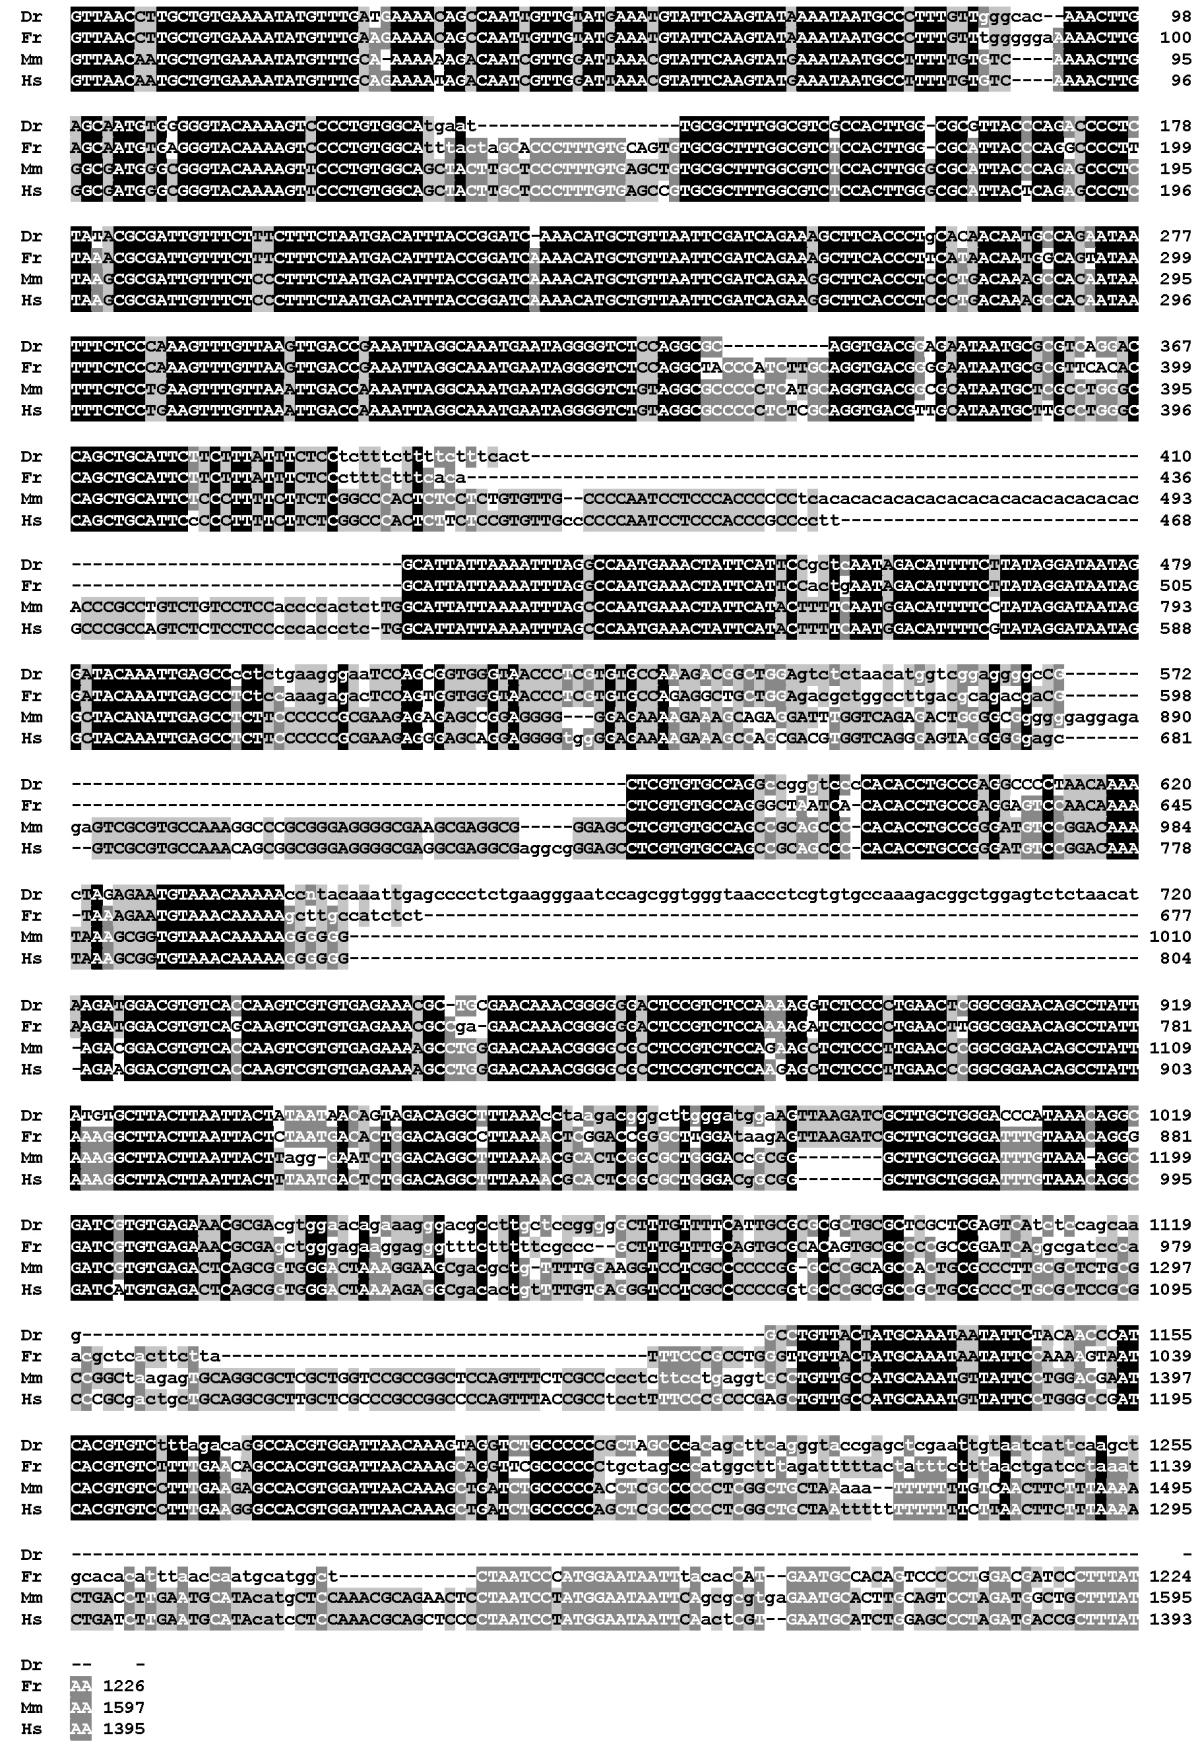 https://static-content.springer.com/image/art%3A10.1186%2F1471-2164-3-21/MediaObjects/12864_2002_Article_34_Fig6_HTML.jpg